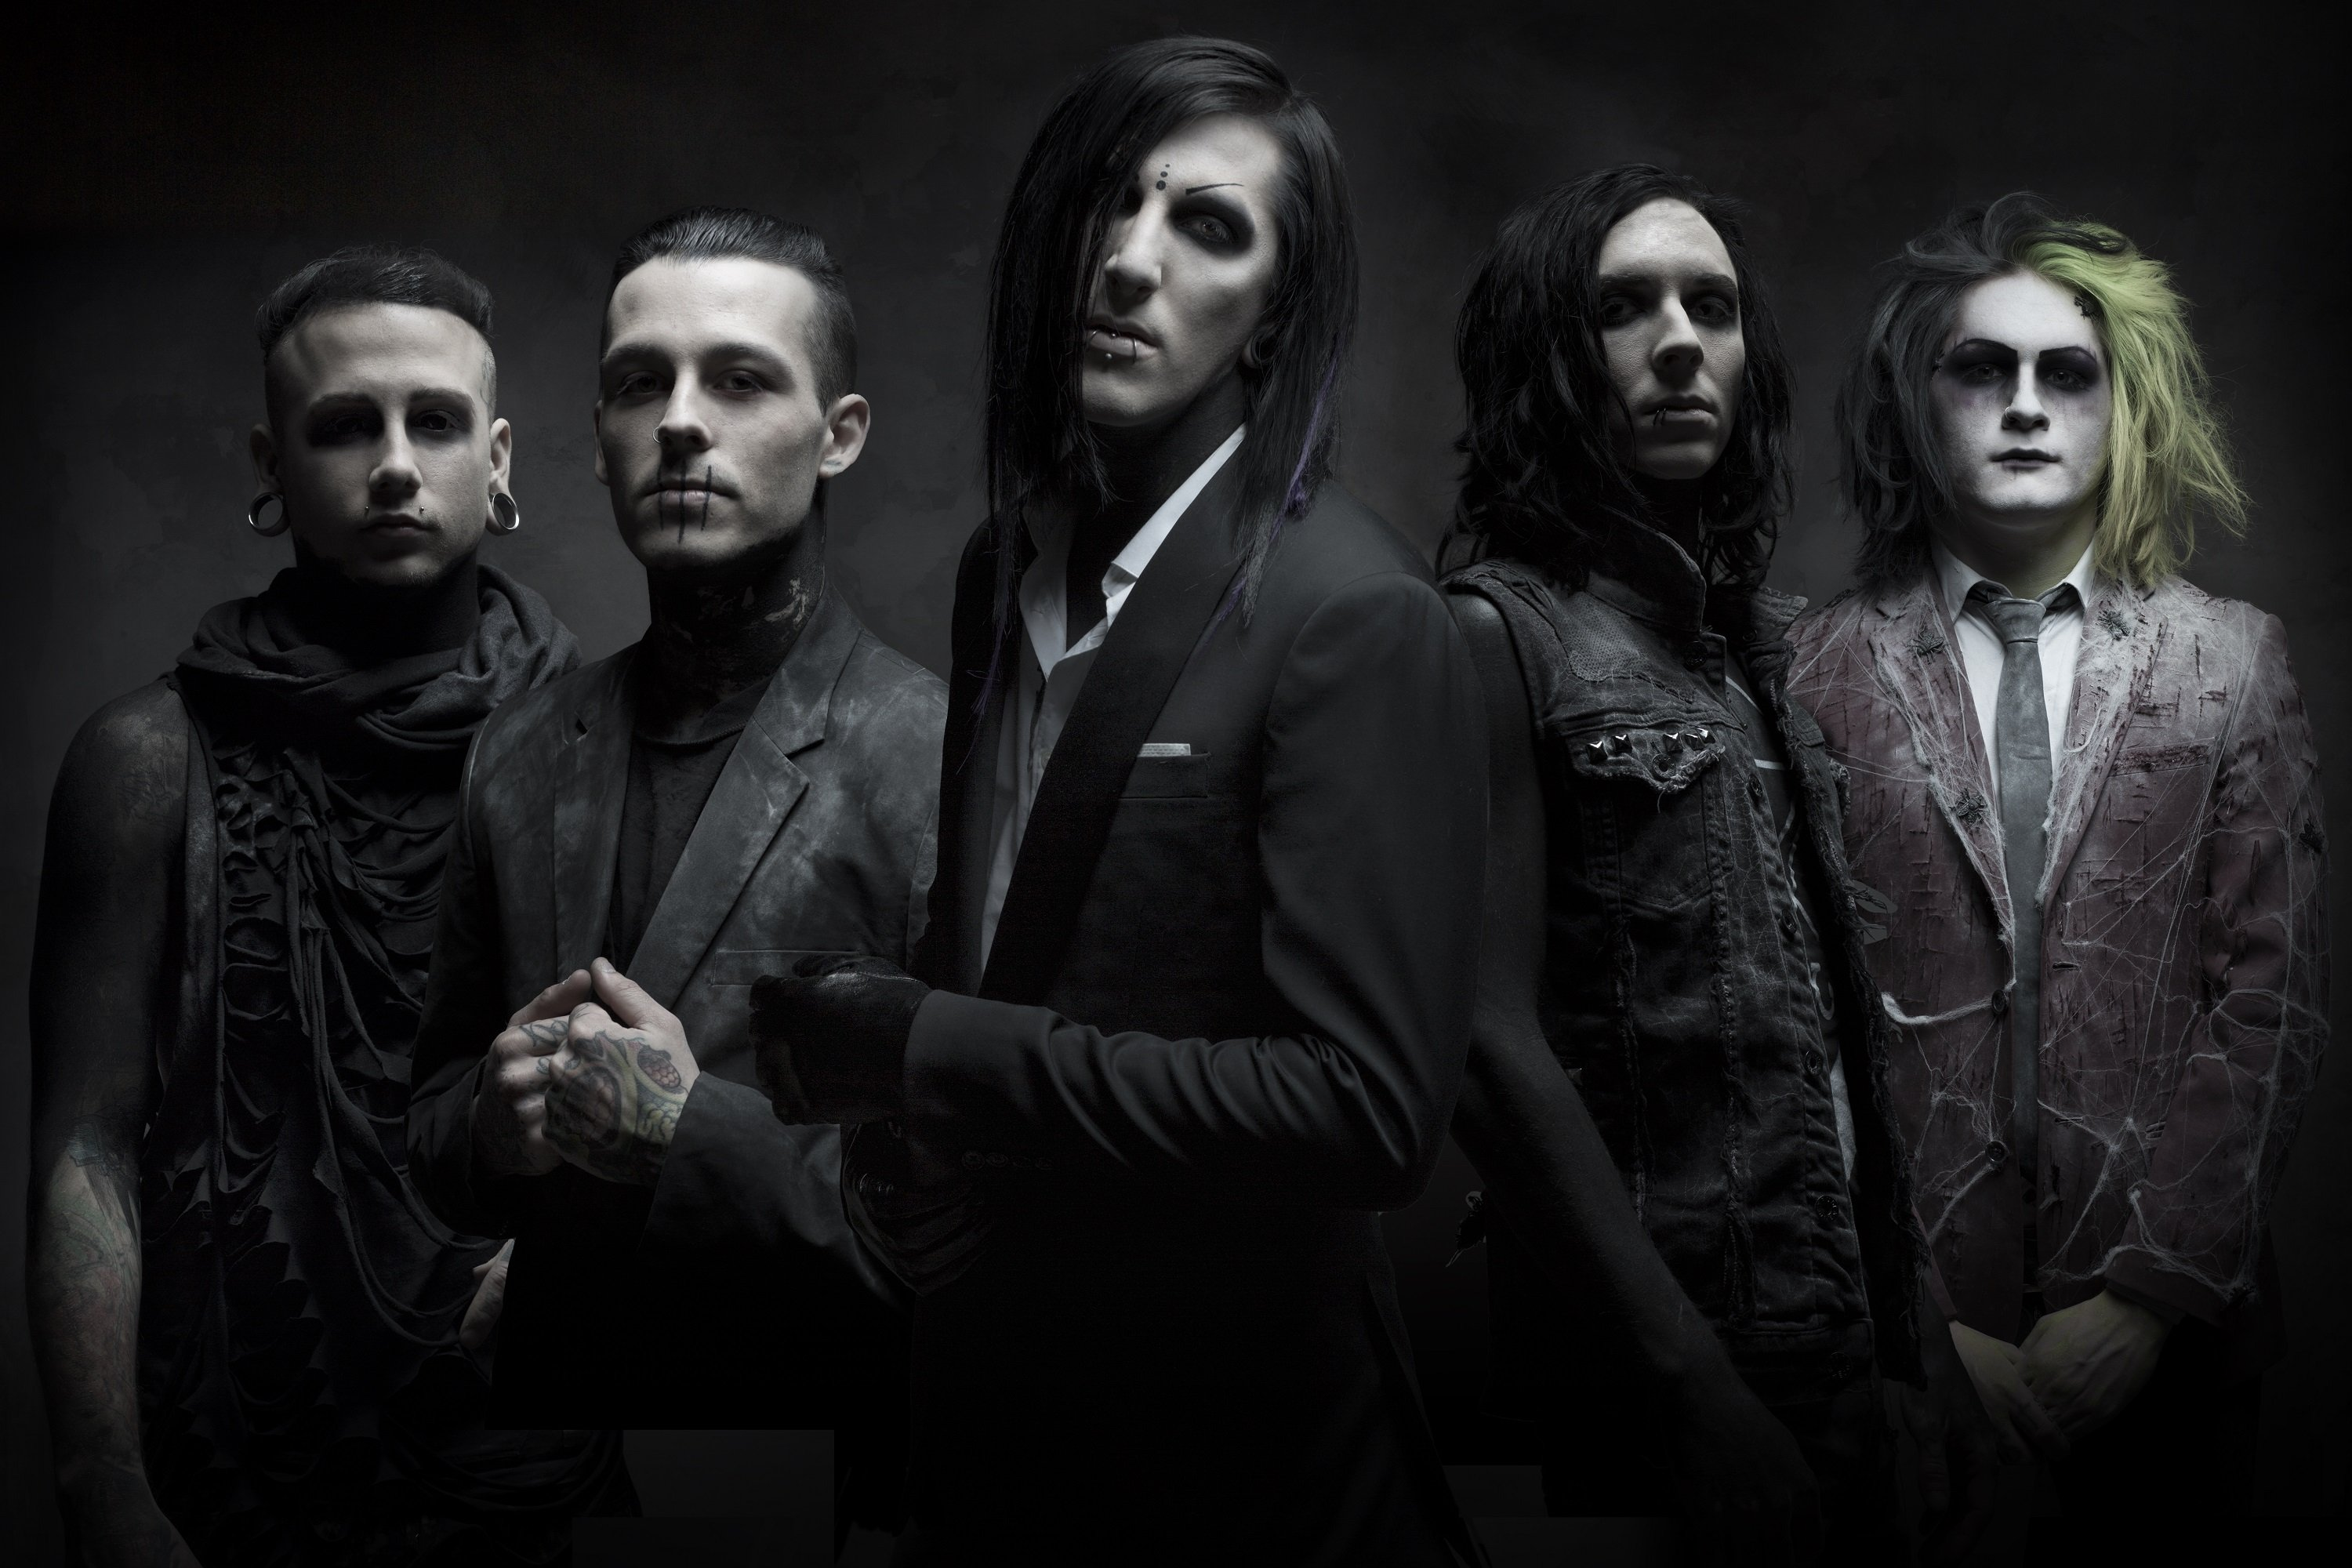 Download motionless in white wallpapers gallery - Motionless in white wallpaper ...